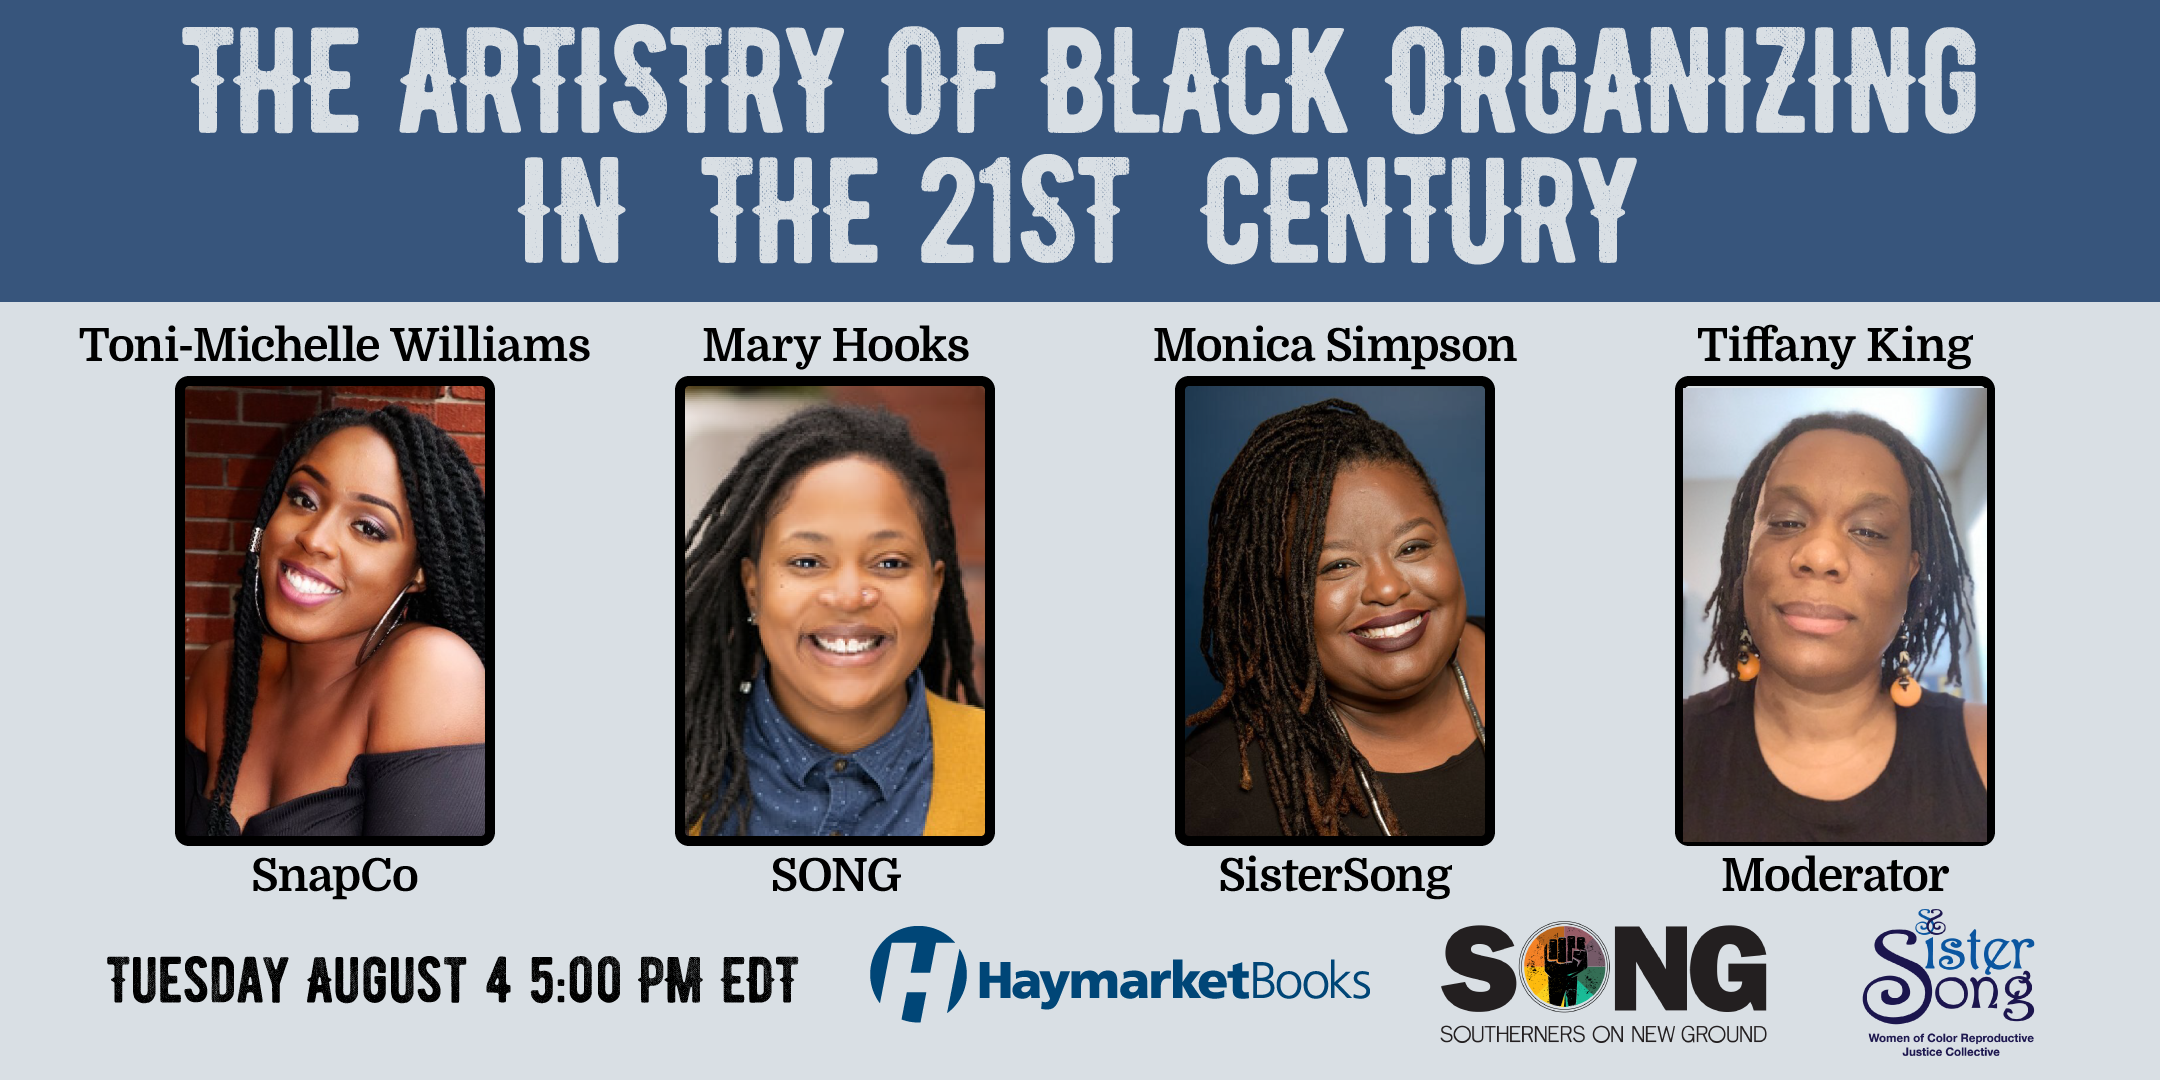 Black_organizing_title_card_final_eventbrite-